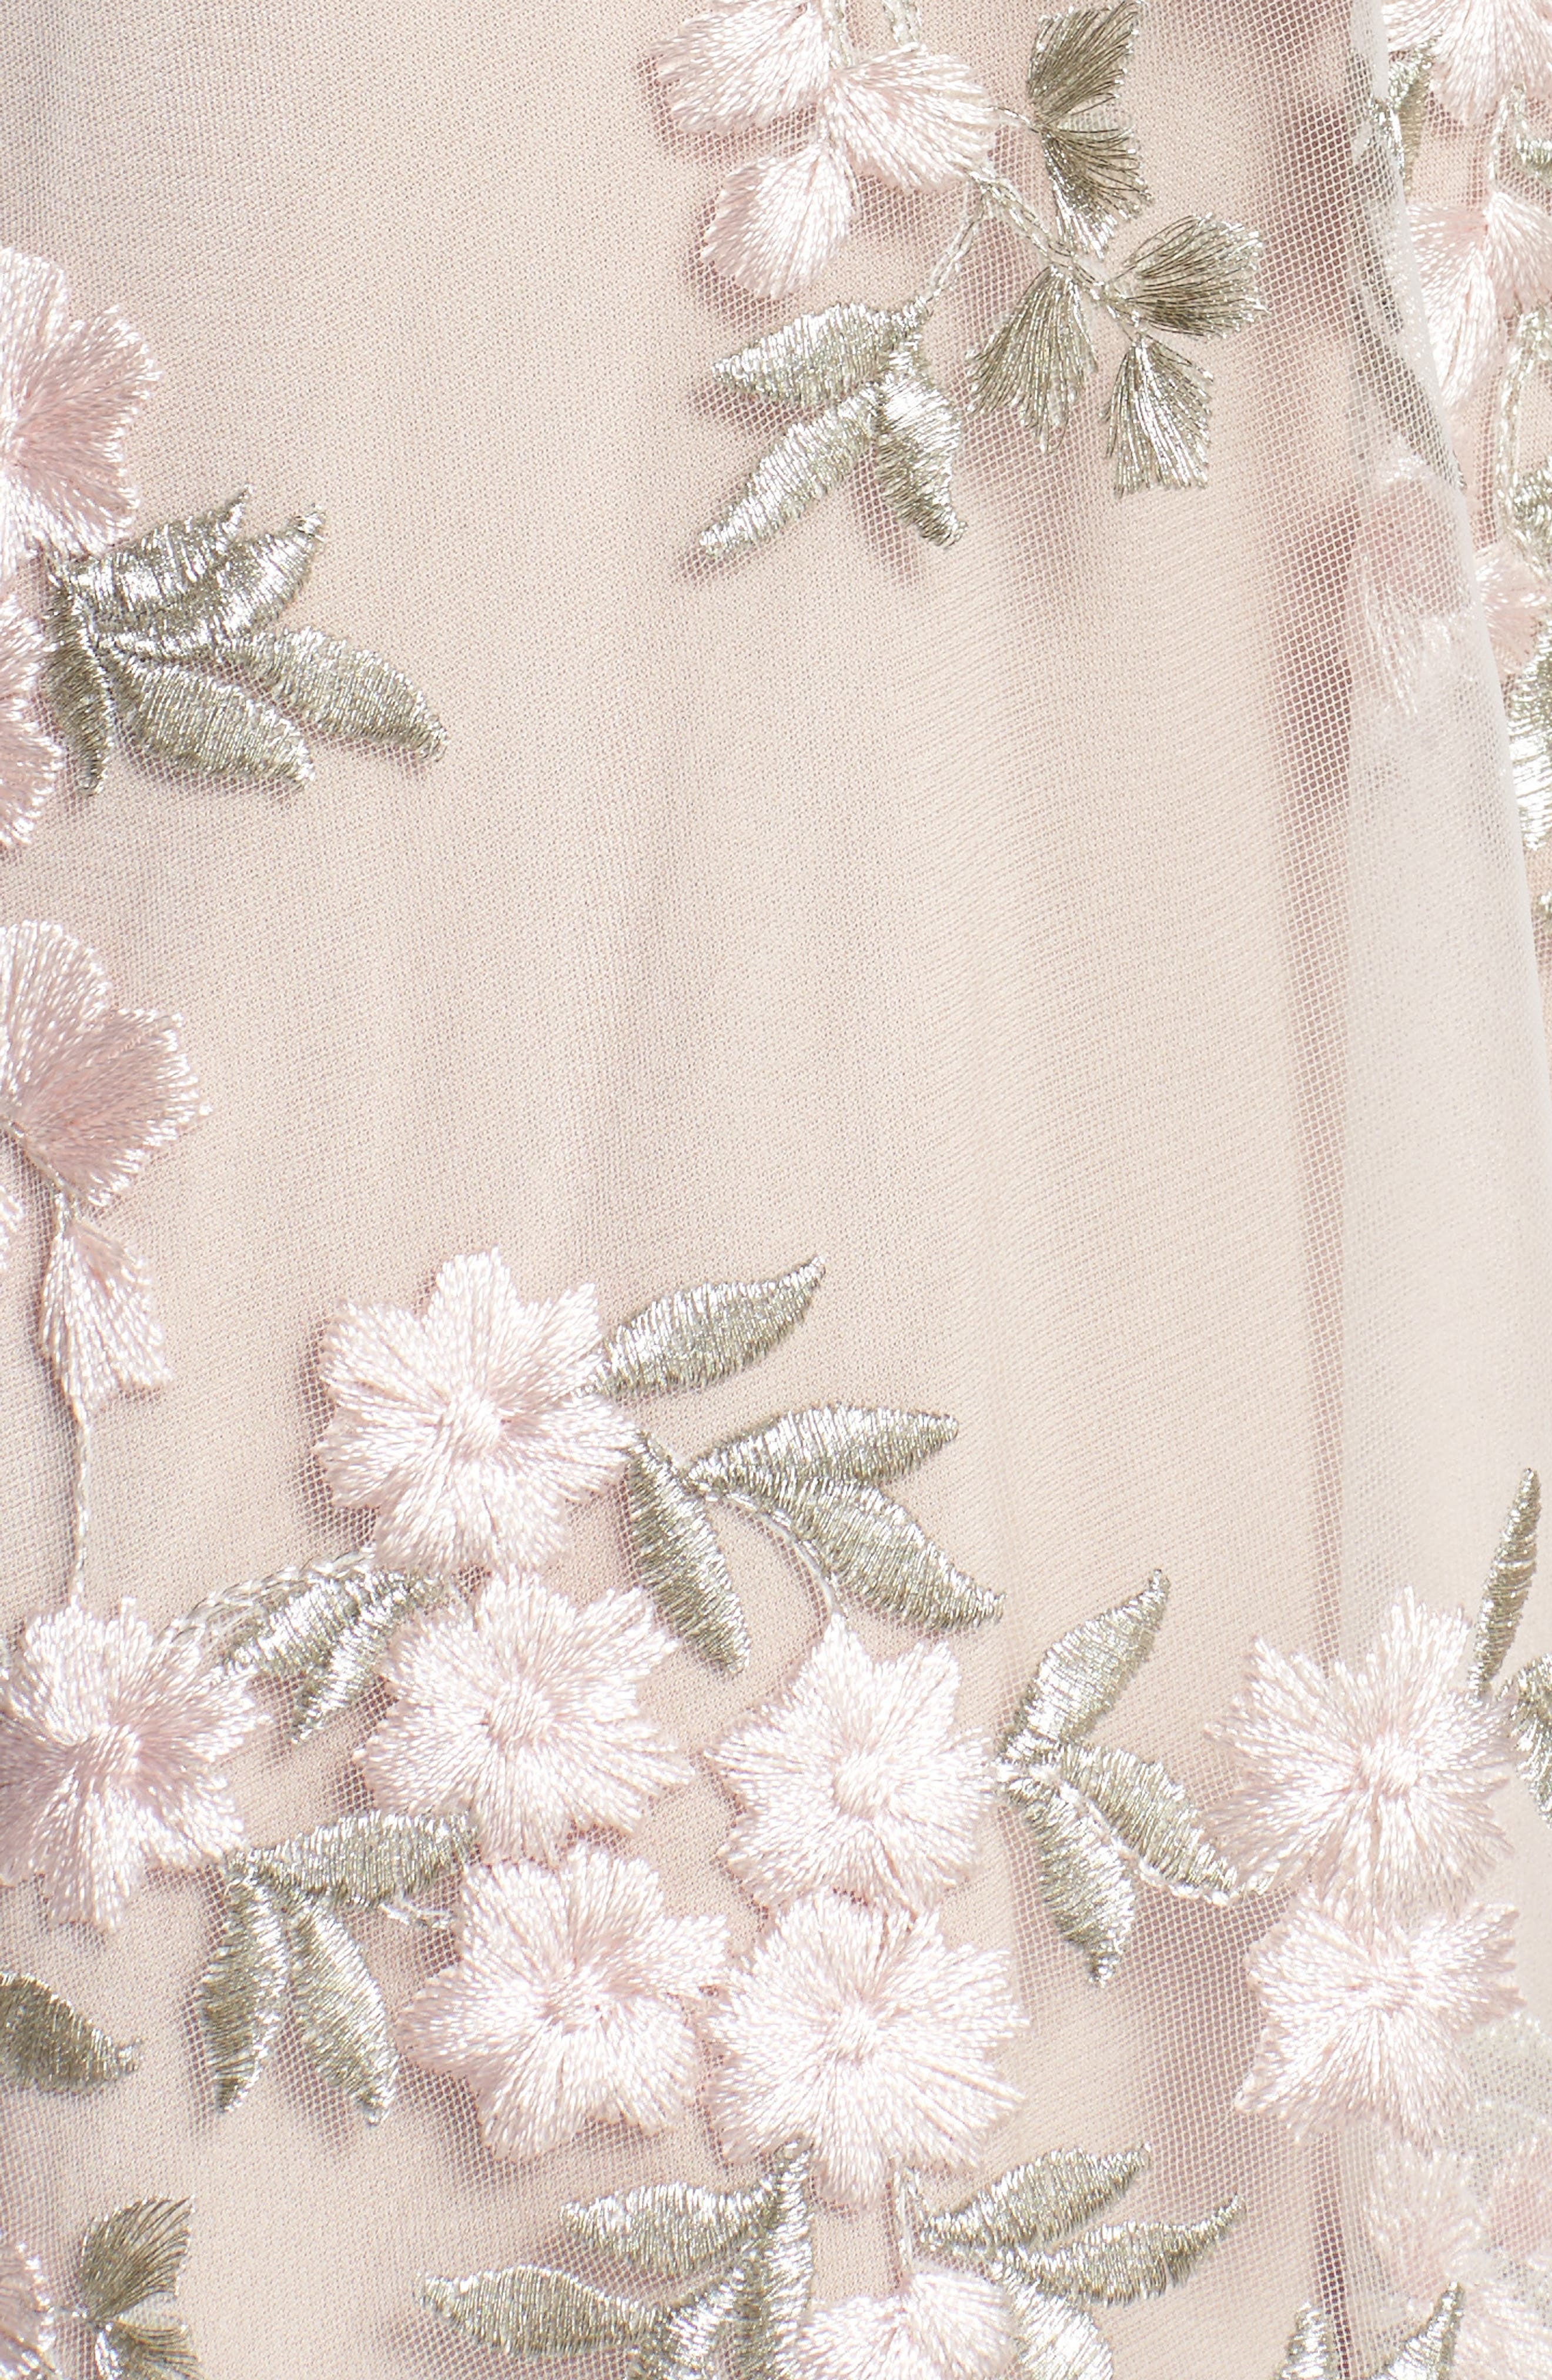 Rosalie Embroidered Midi Dress,                             Alternate thumbnail 5, color,                             IVORY/ PINK